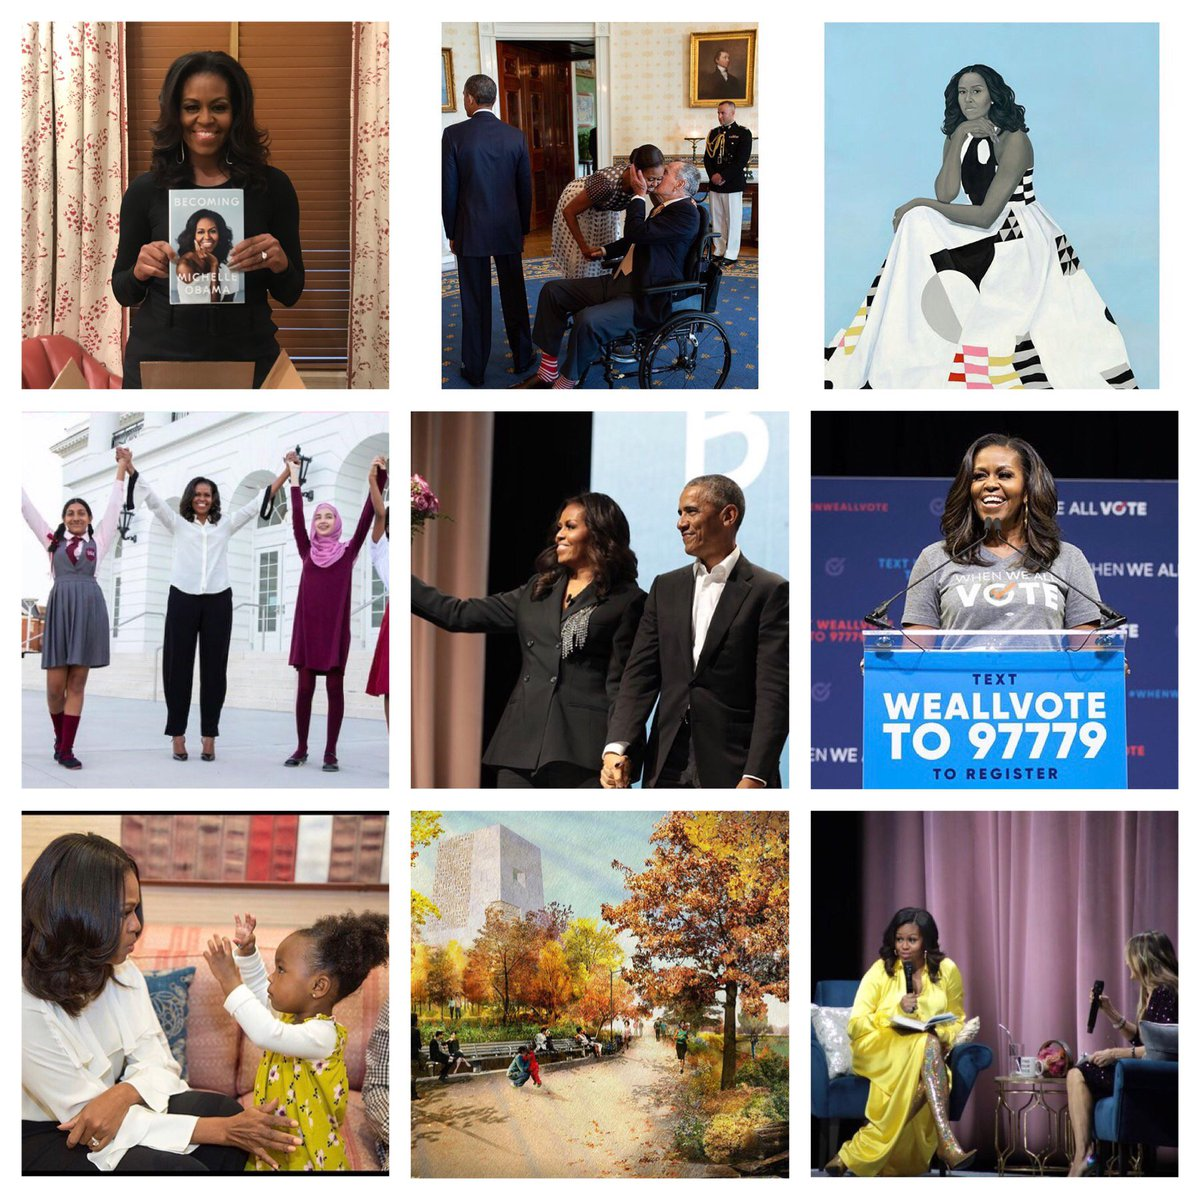 As I reflect on the past year, I'm so thankful and overwhelmed by all the new experiences and memories. From launching new endeavors and engaging new voters to sharing my story with all of you. Thank you for joining me on this journey. There's so much to discover in 2019!